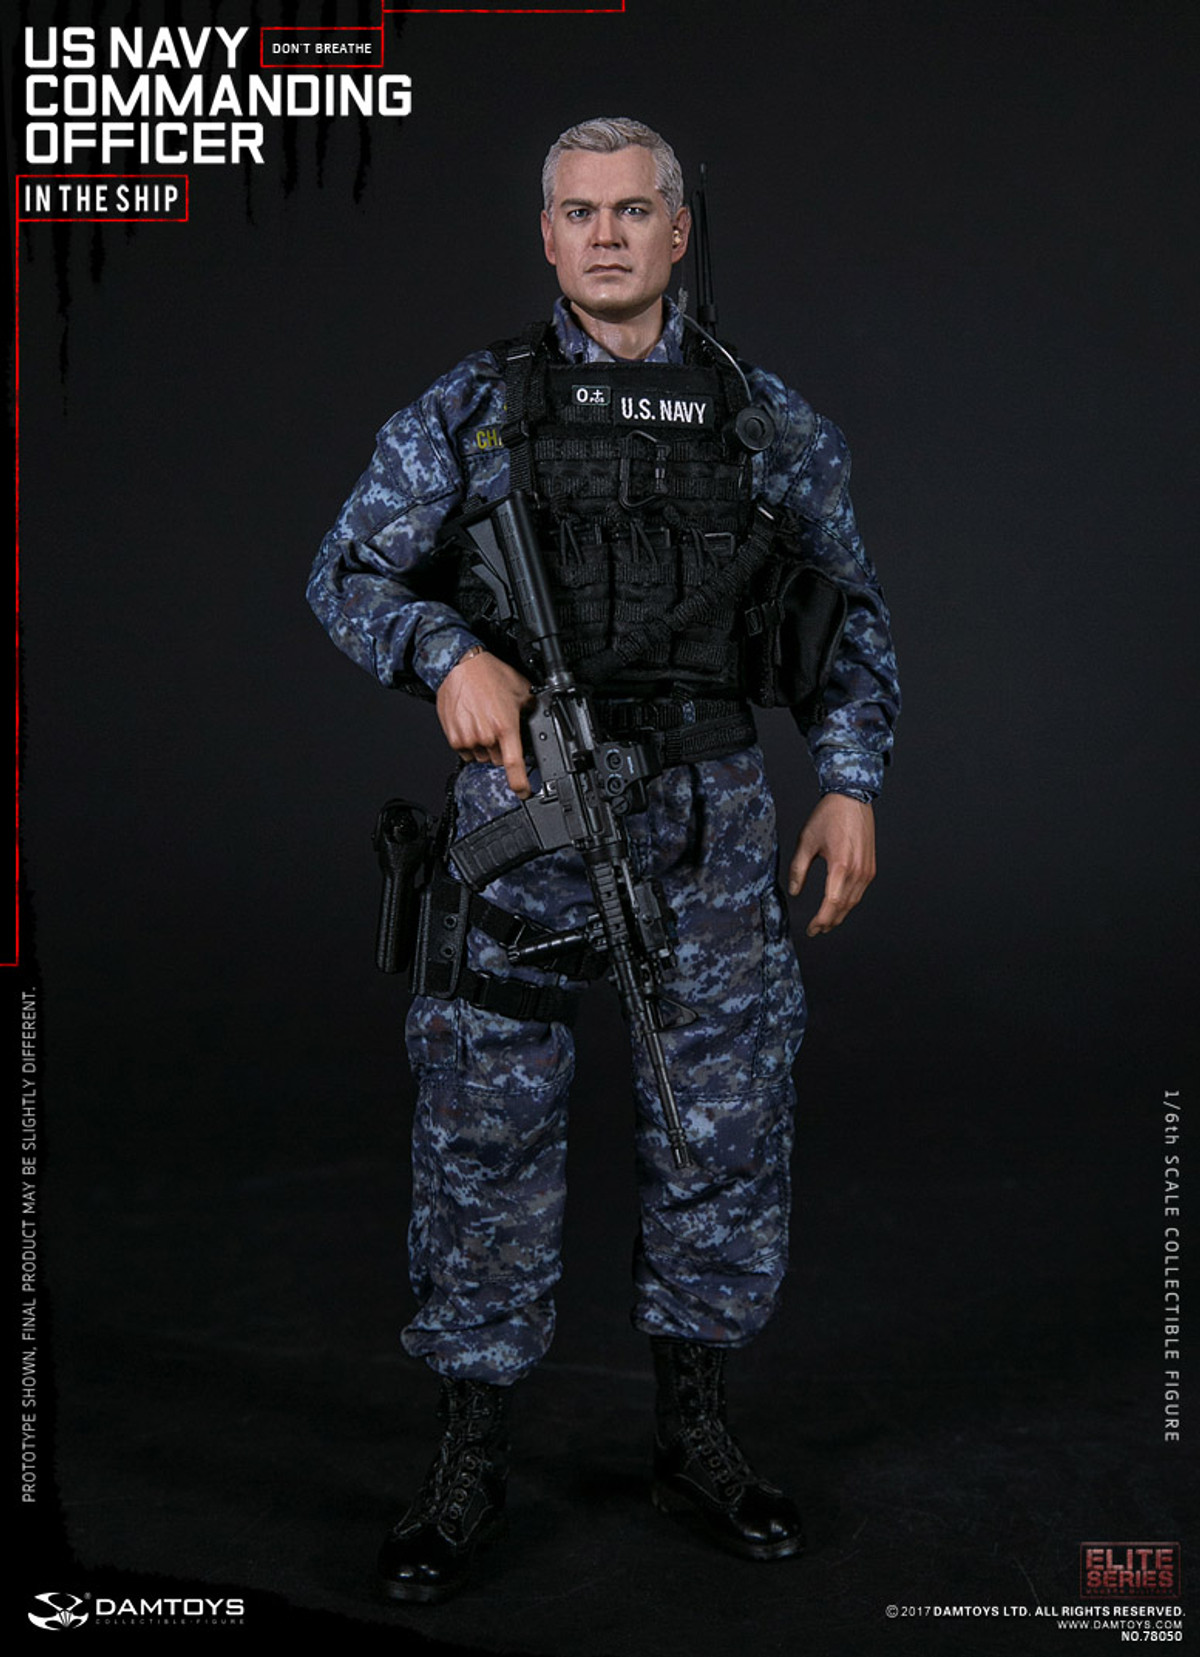 Working Uniform Set Navy Commanding Officer 1//6 Scale Damtoys Action Figure